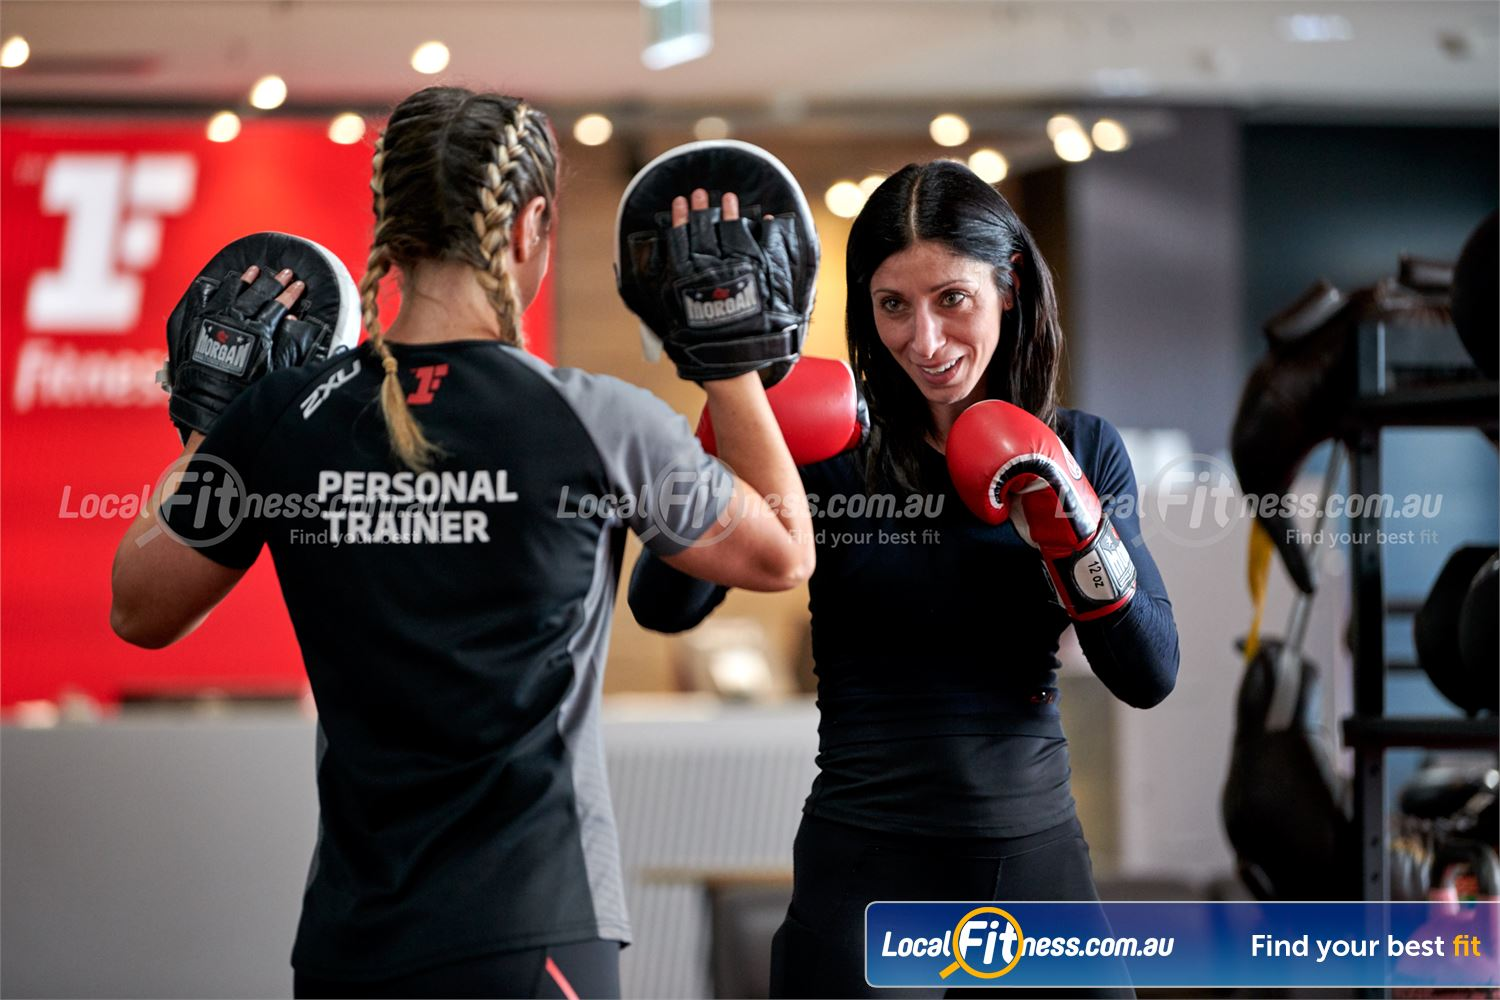 Fitness First Doncaster Our Doncaster gym team can show you the benefits of cardio boxing training.